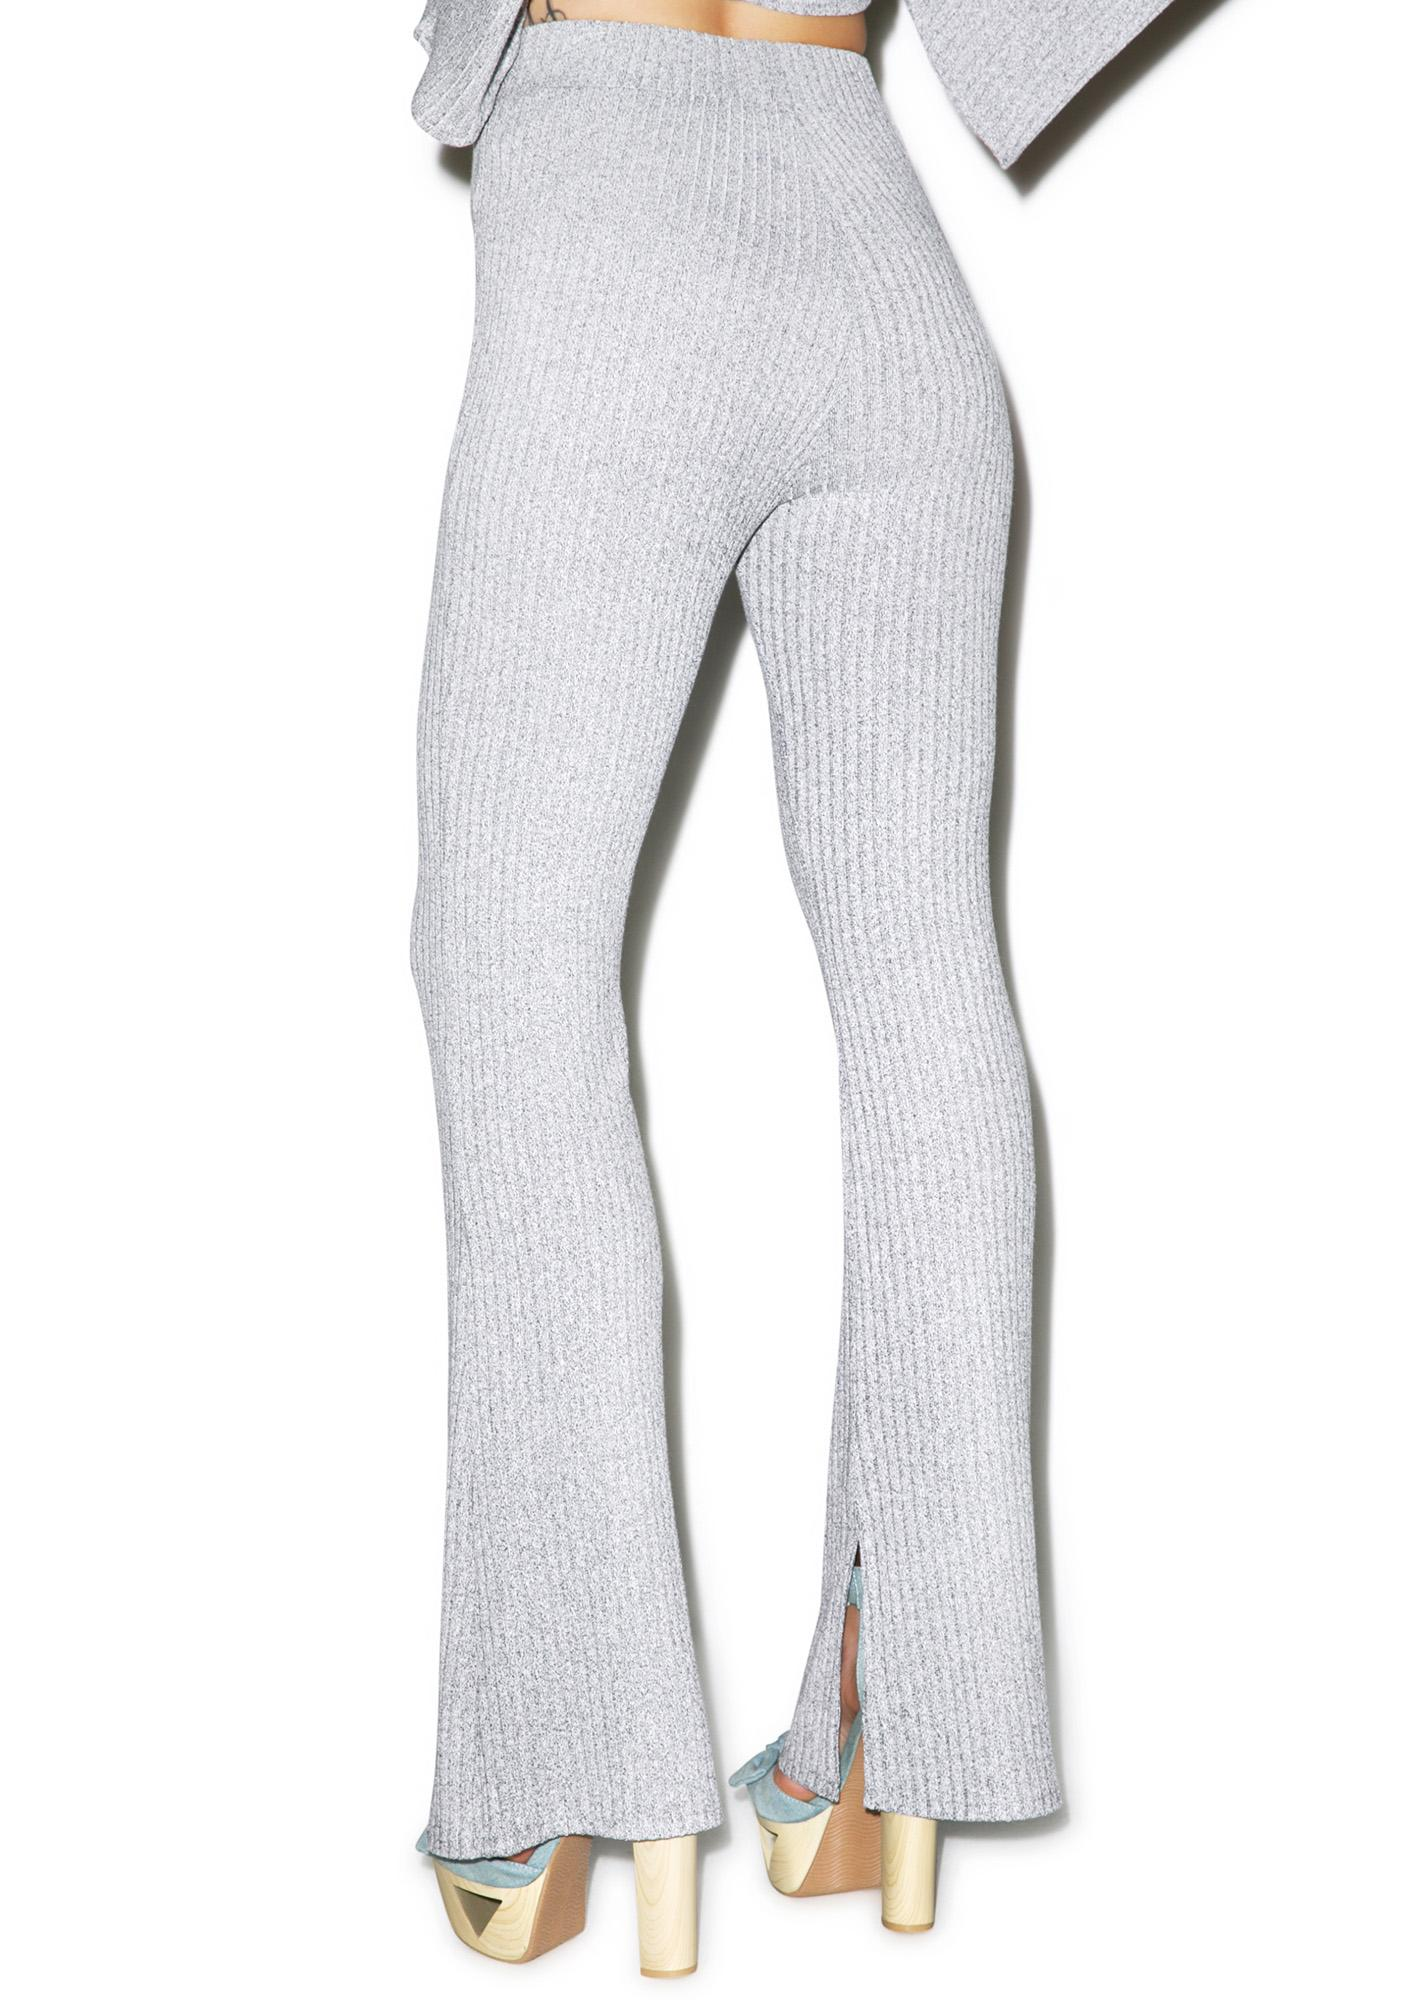 Lavish Alice Knit Split Flares